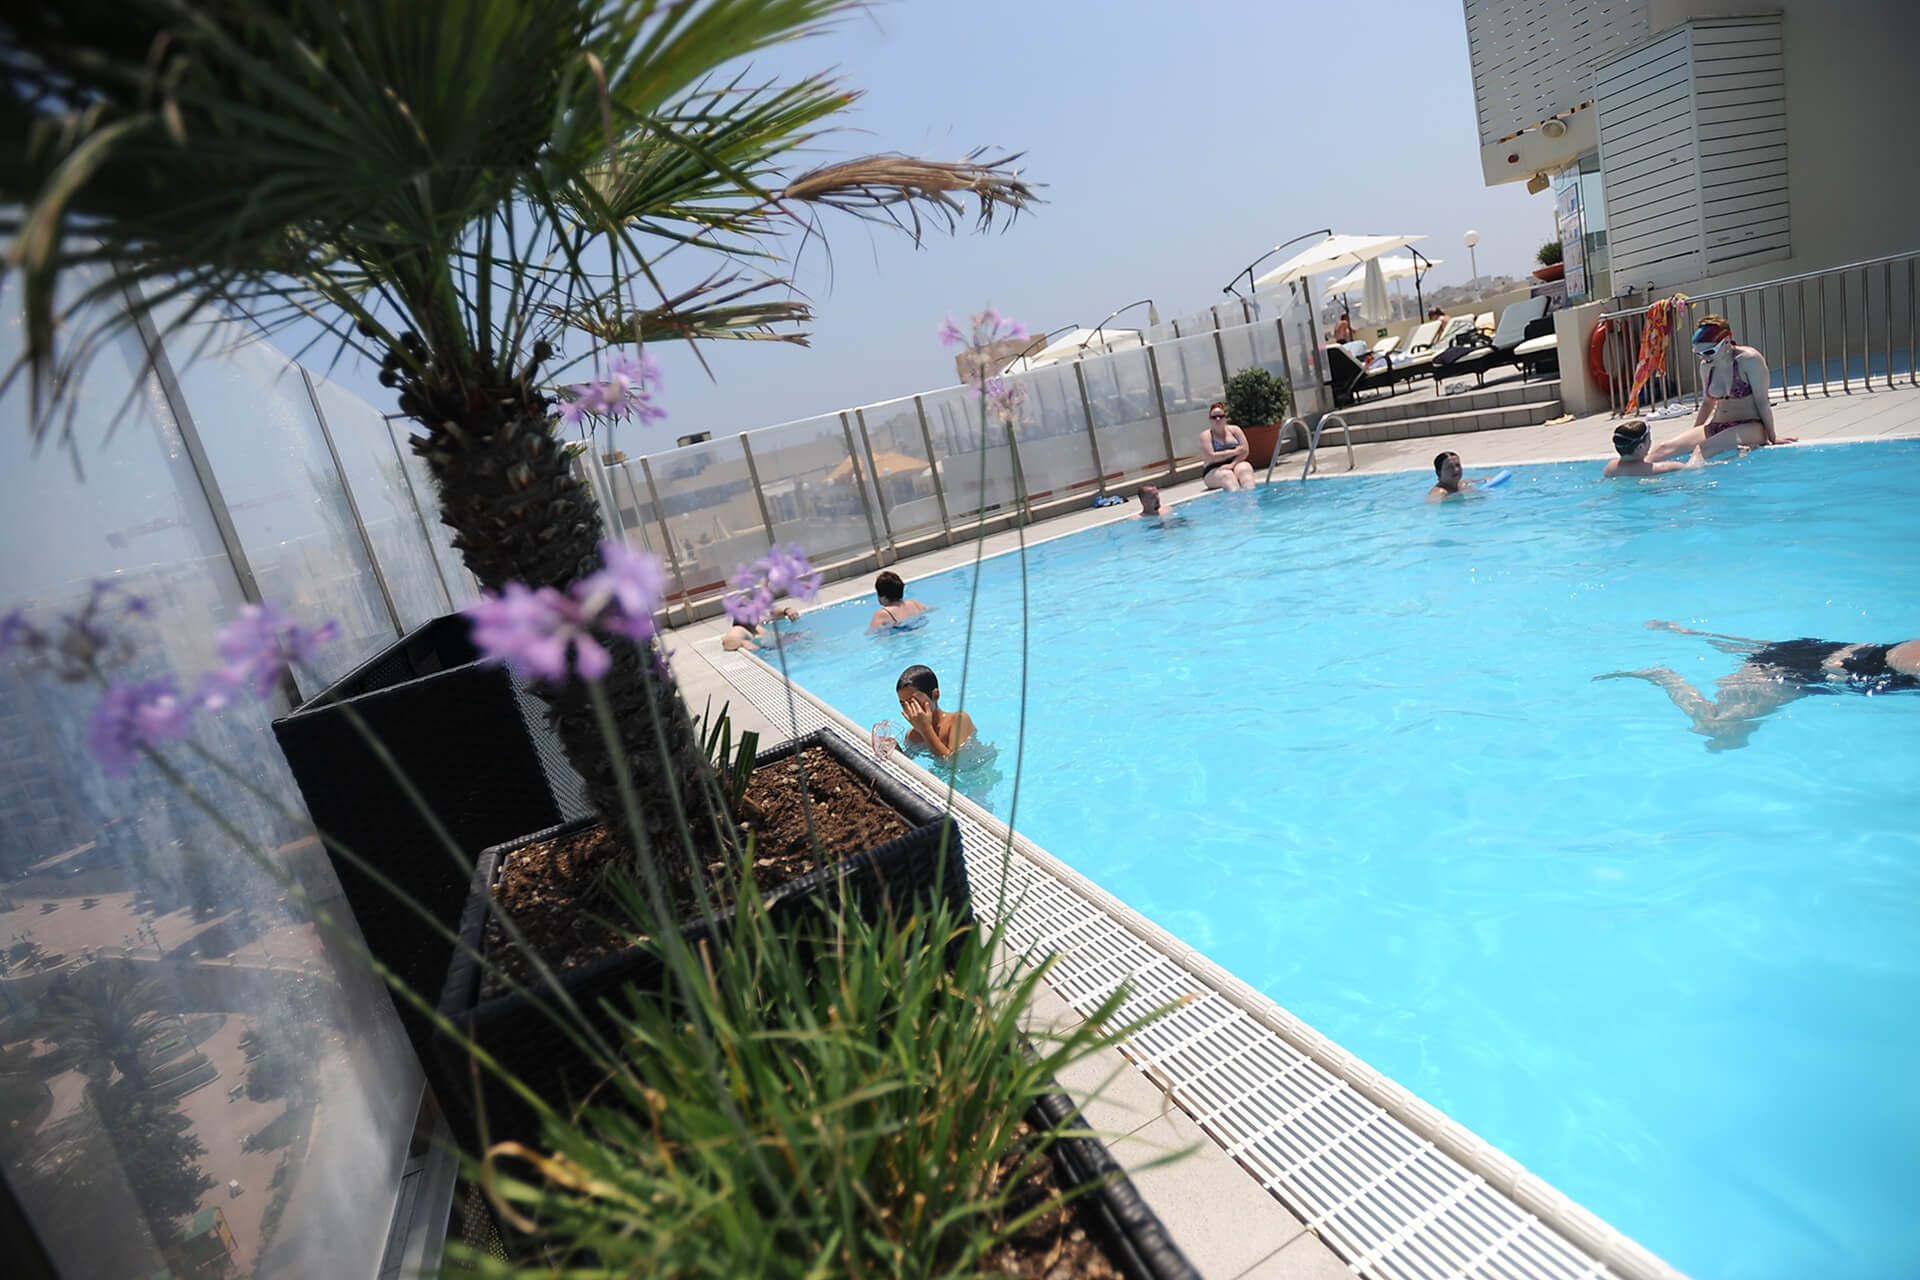 Plaza Regency Hotel outdoor pool